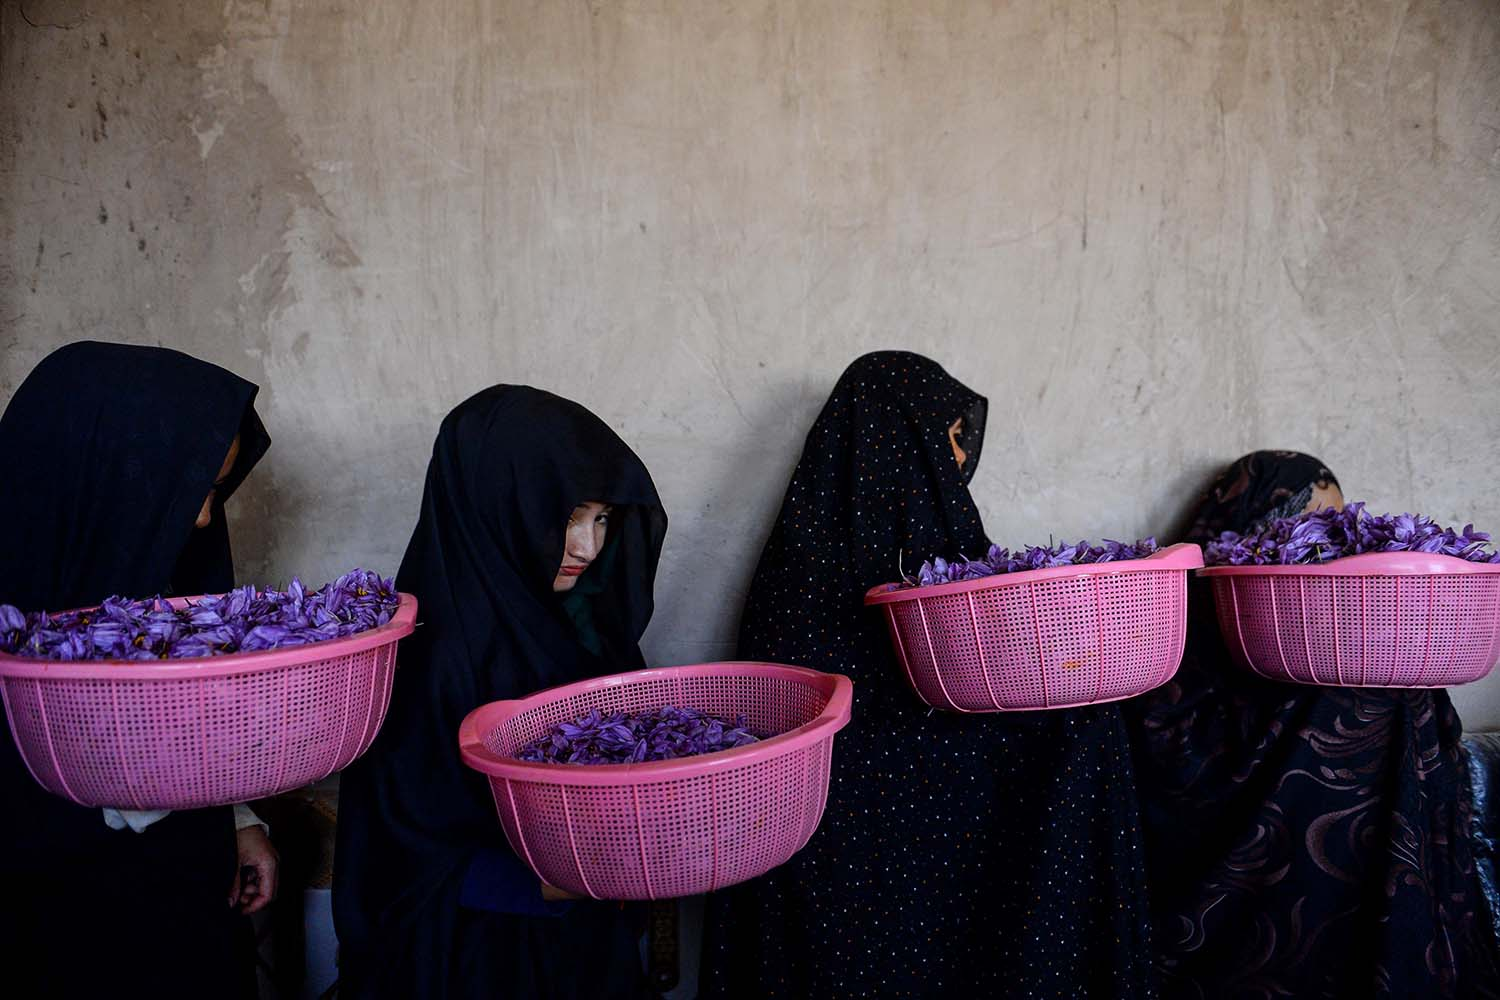 Workers carry buckets of saffron flowers to sort them at a cleaning center in Herat province, Afghanistan, on Nov. 13. HOSHANG HASHIMI/AFP via Getty Images